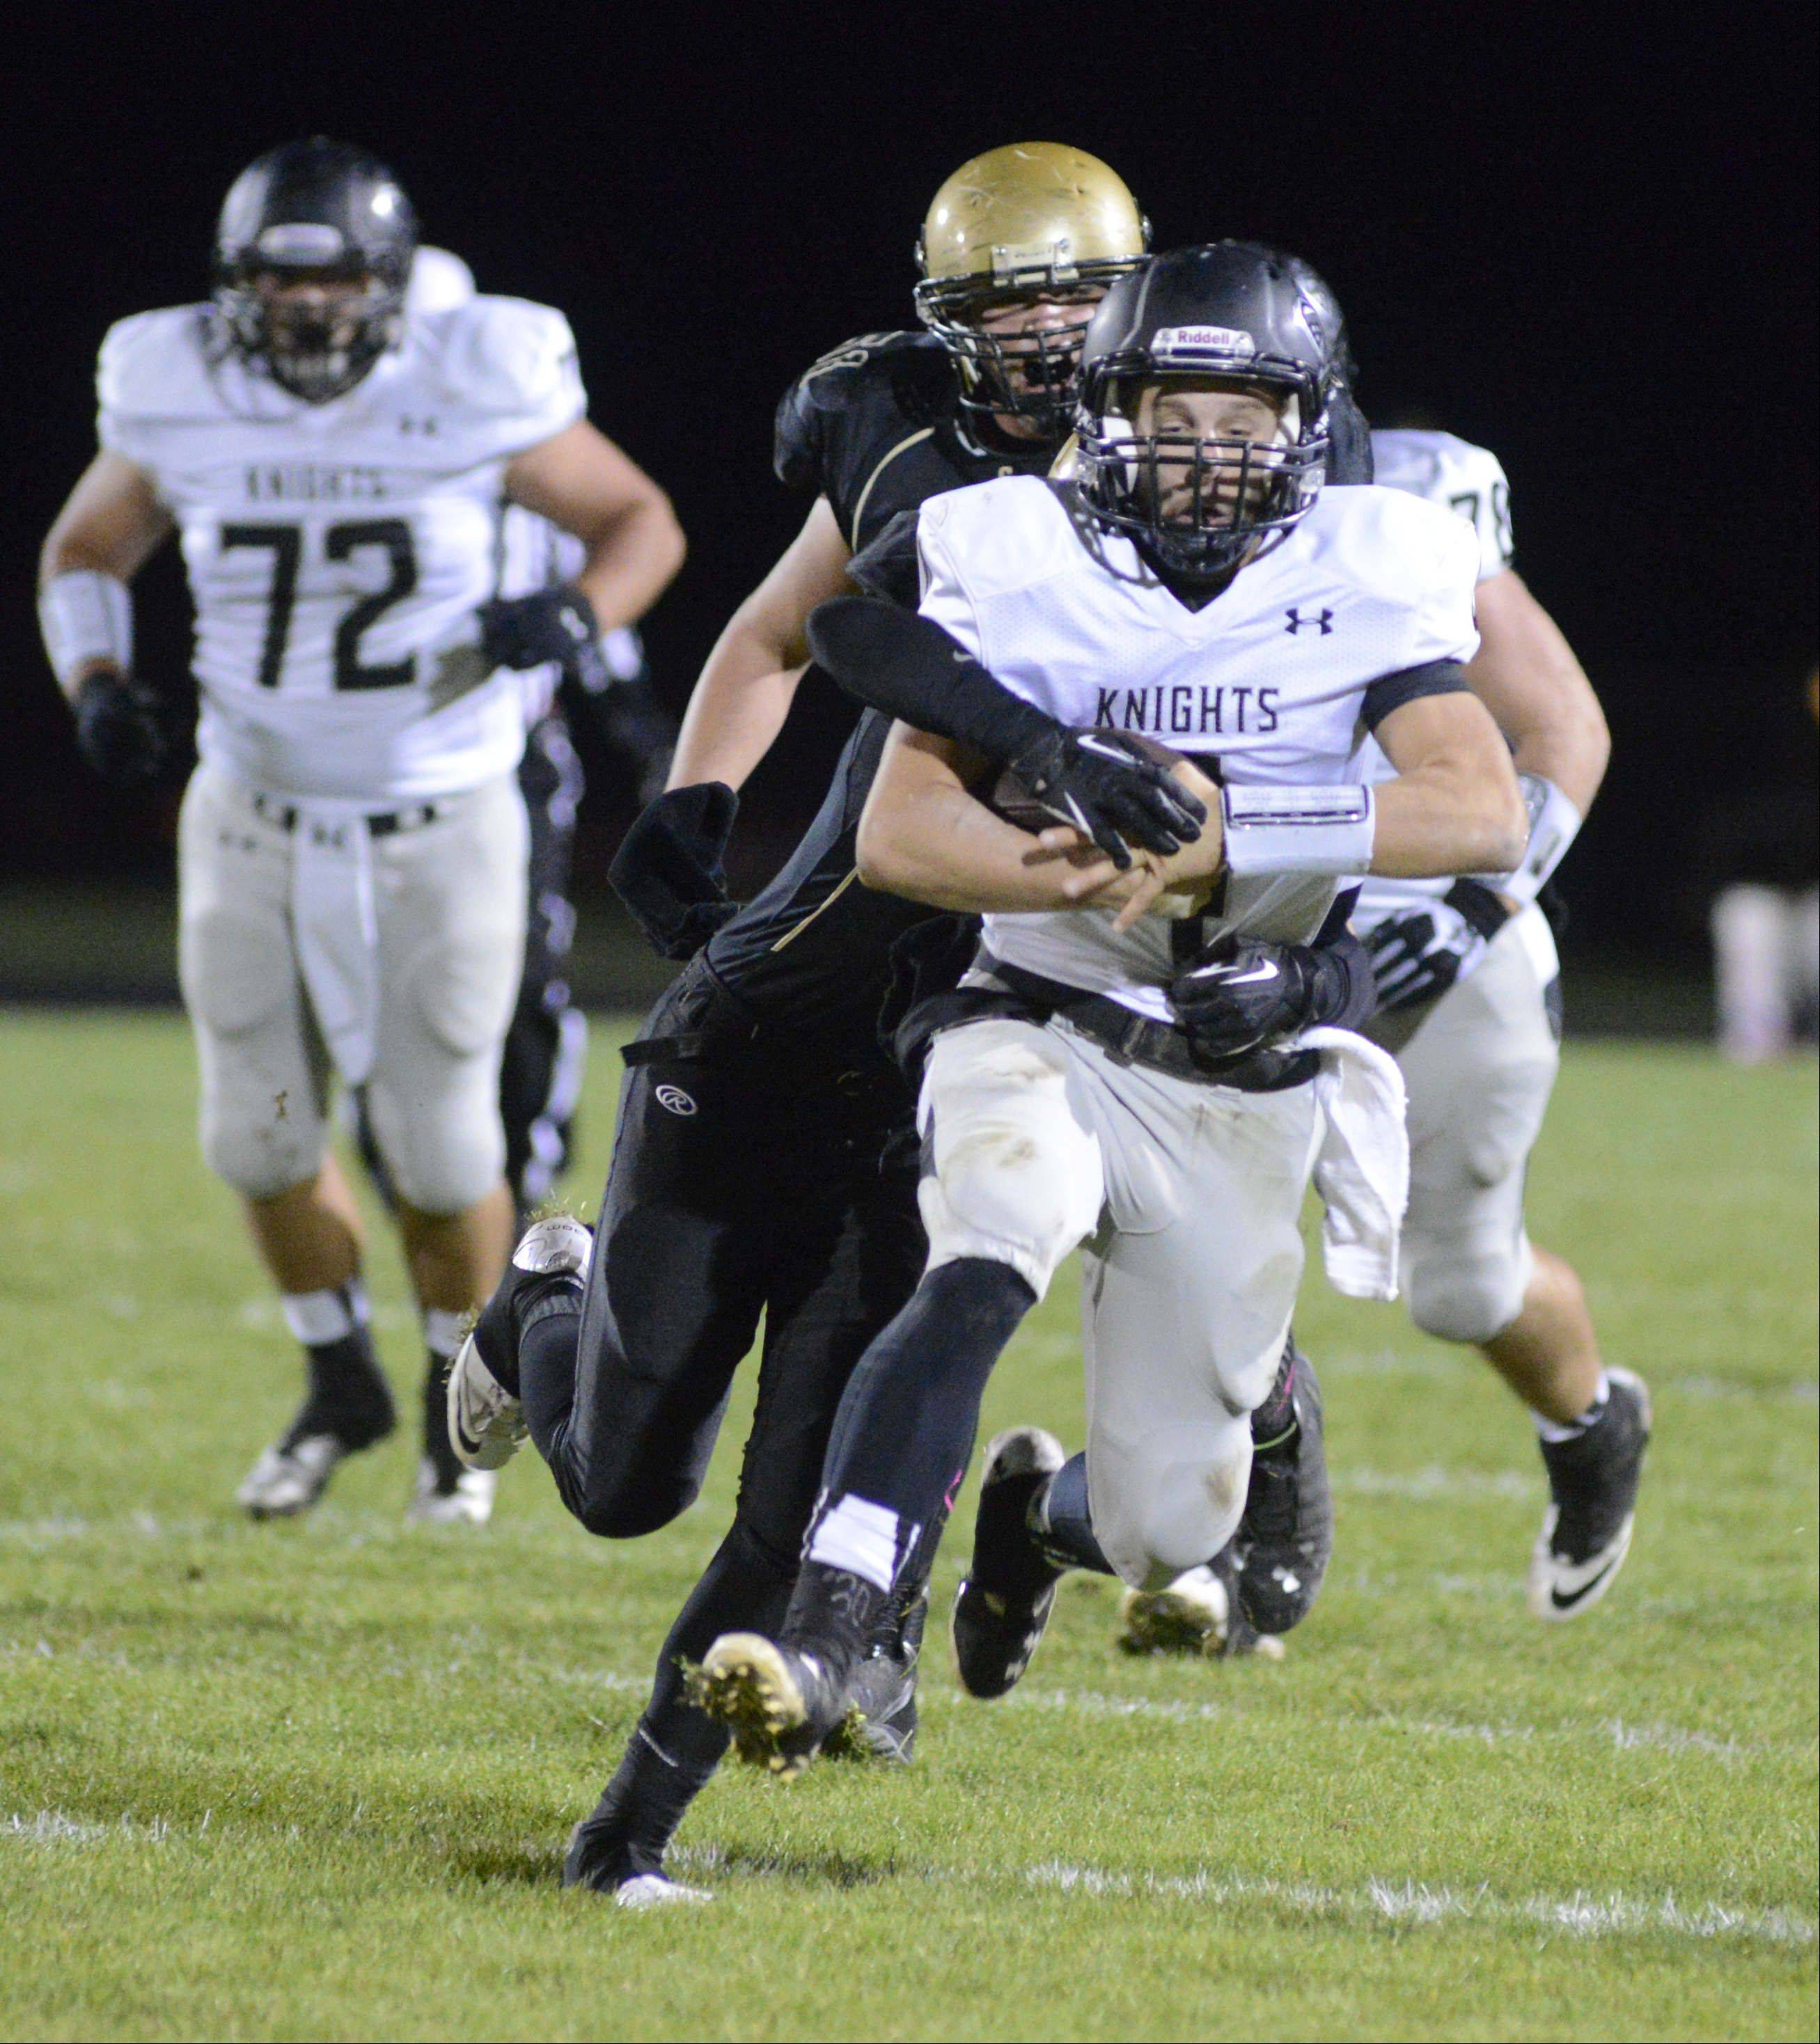 Week 8 - Images from the Kaneland vs. Sycamore football game Friday, October 18, 2013.